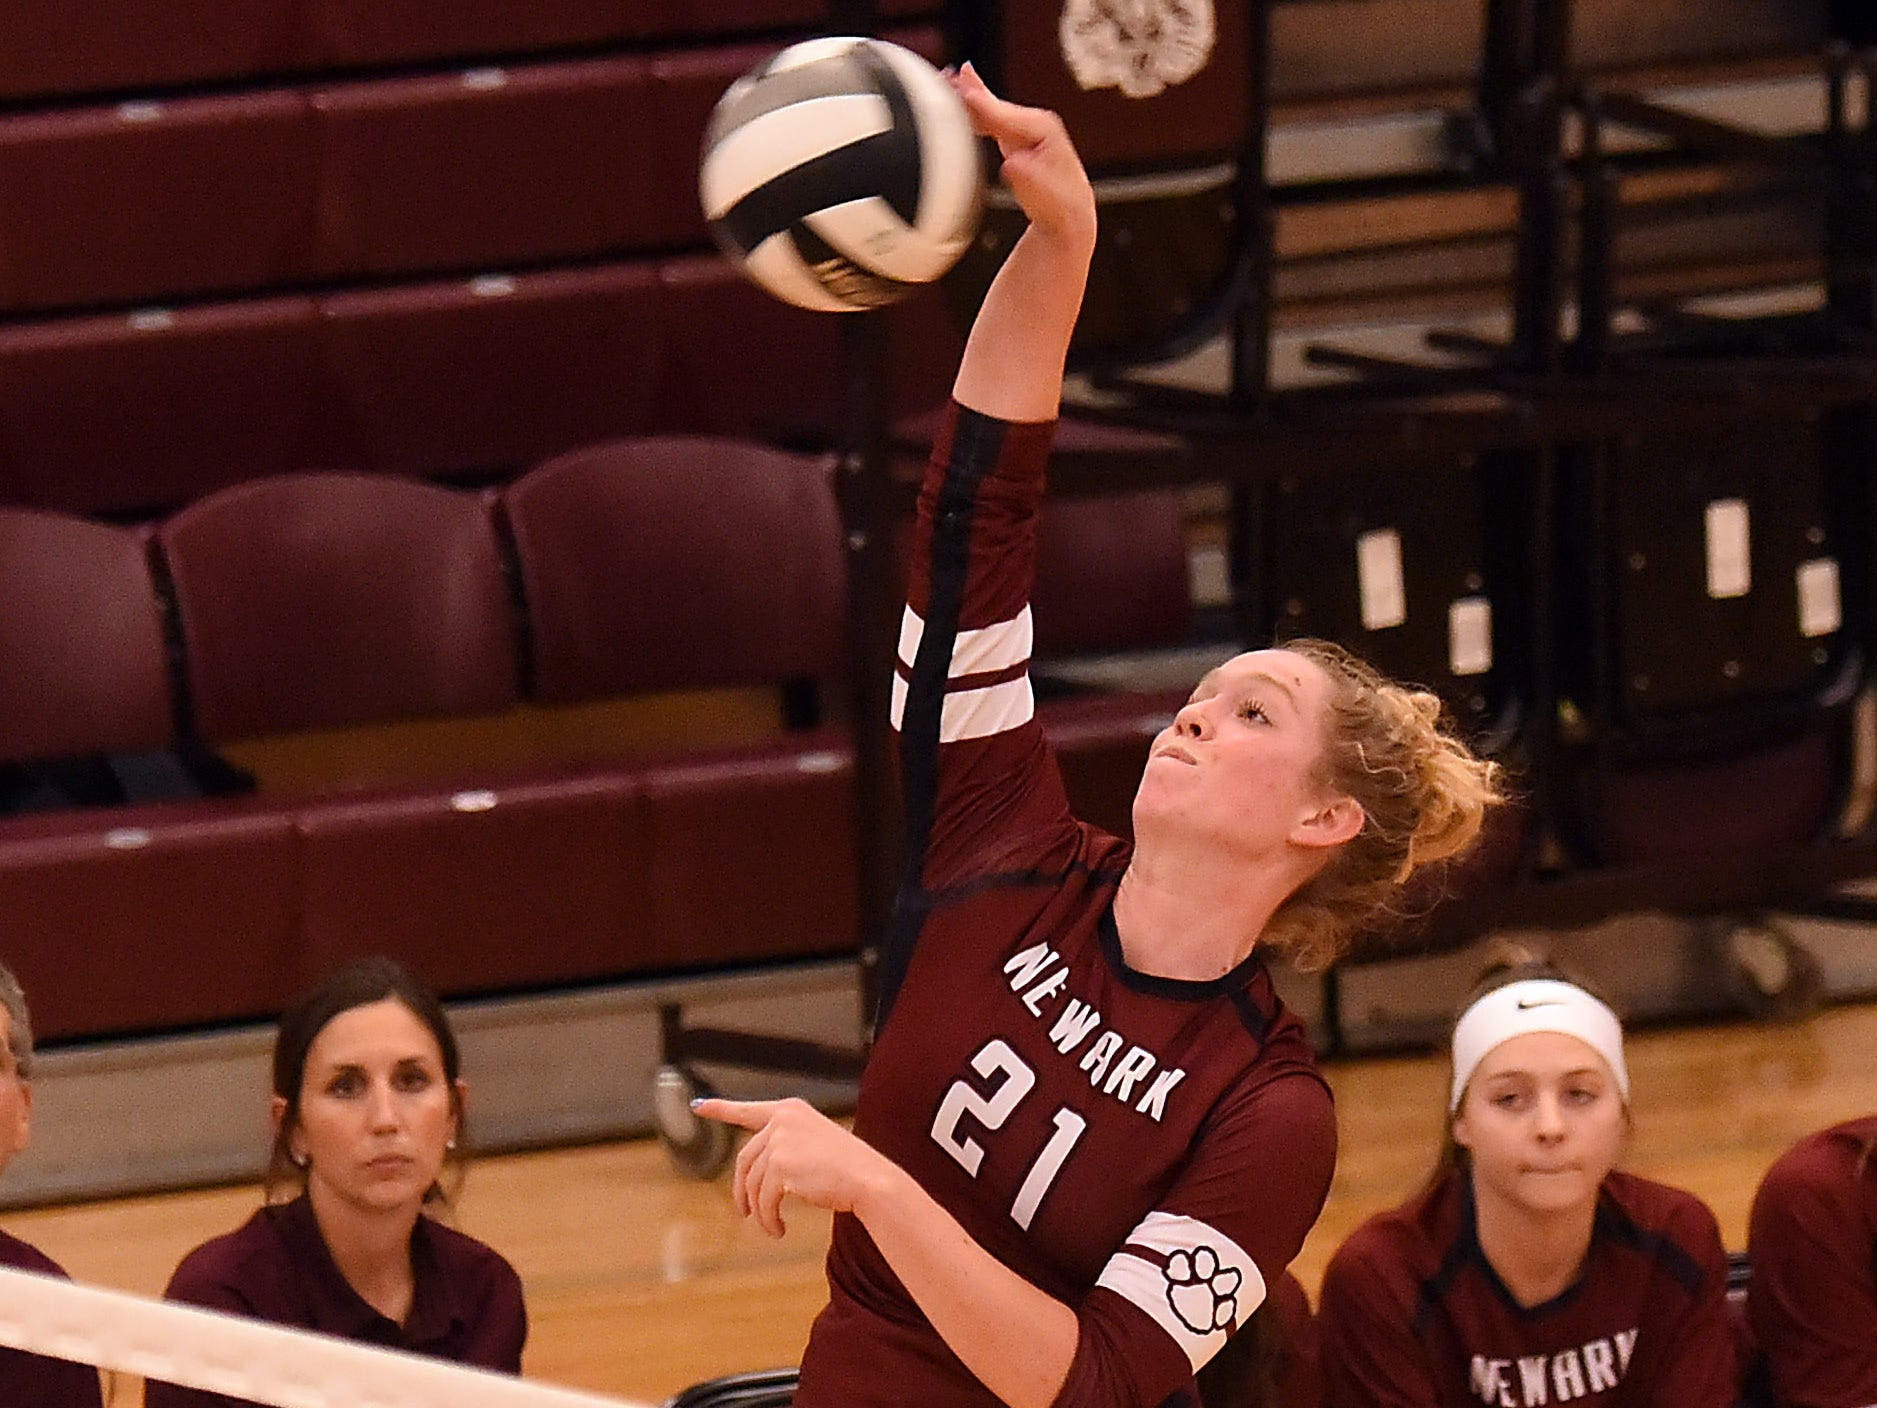 Newark's Katie Pound spikes the ball at Canal Winchester during a match on Wednesday, Oct. 10, 2018. The Wildcats lost to Canal Winchester in five sets; 25-23, 15-25, 14-25, 25-22, 15-8.